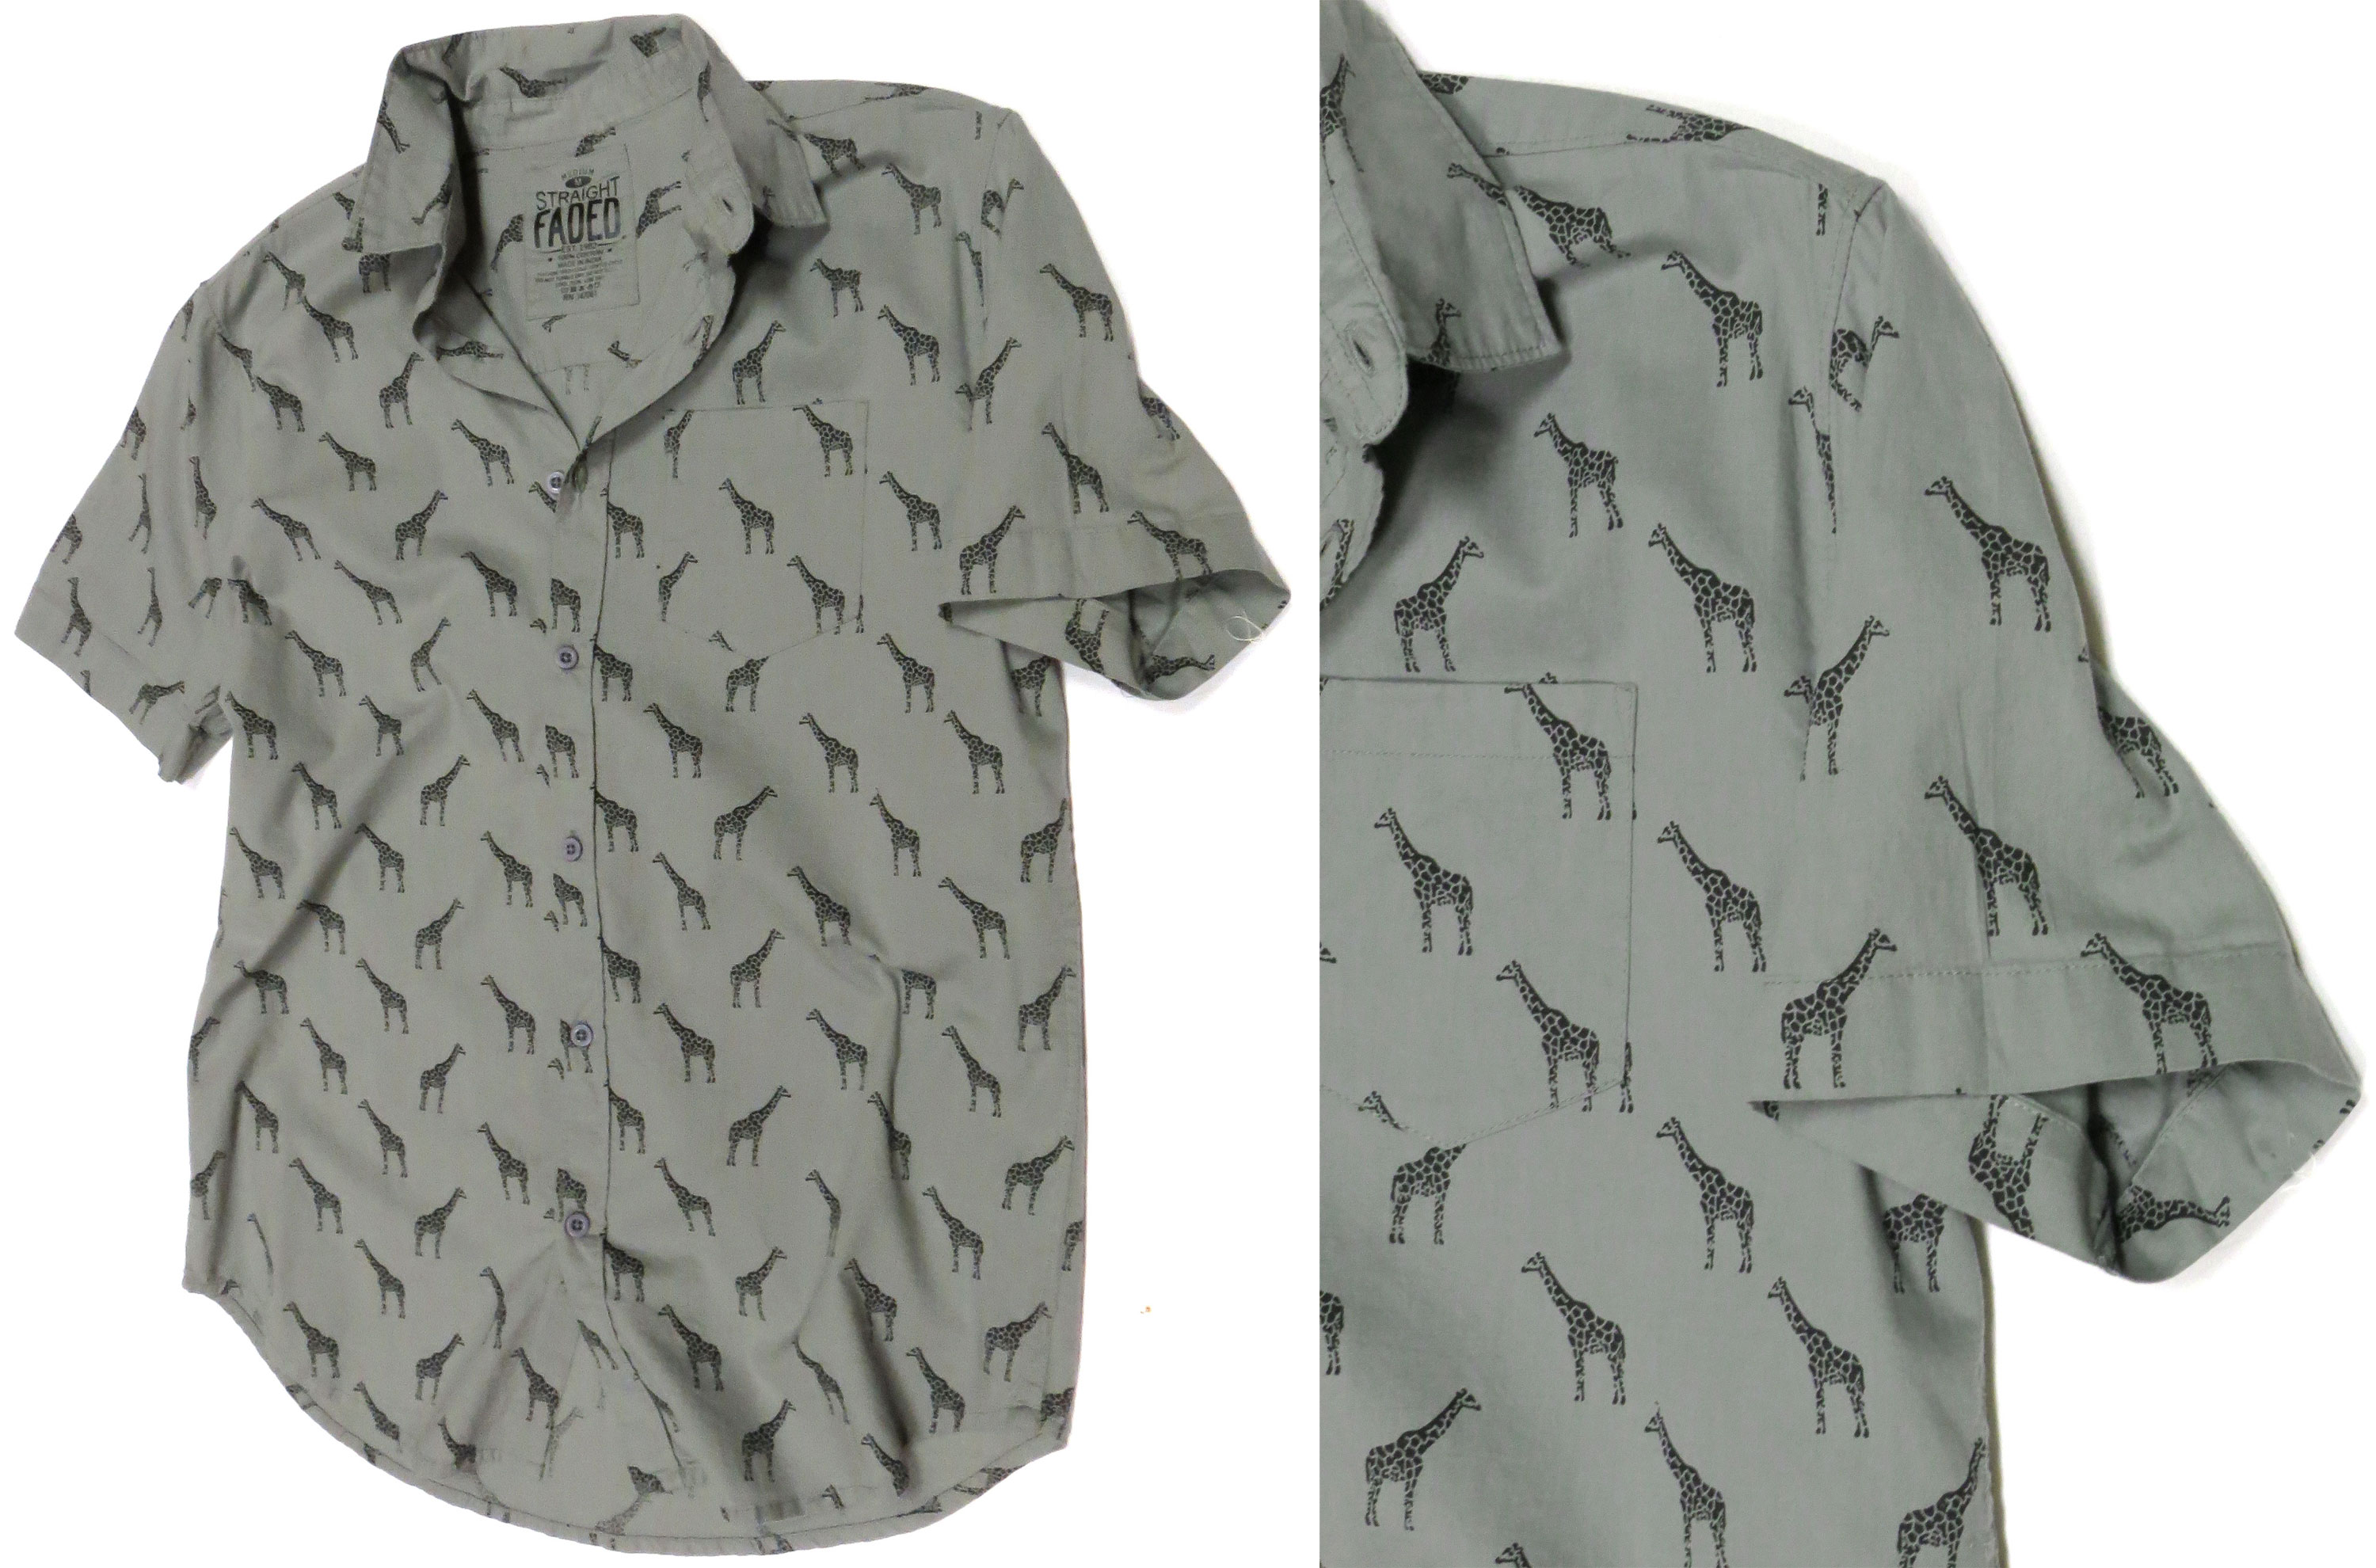 Giraffe Oxford